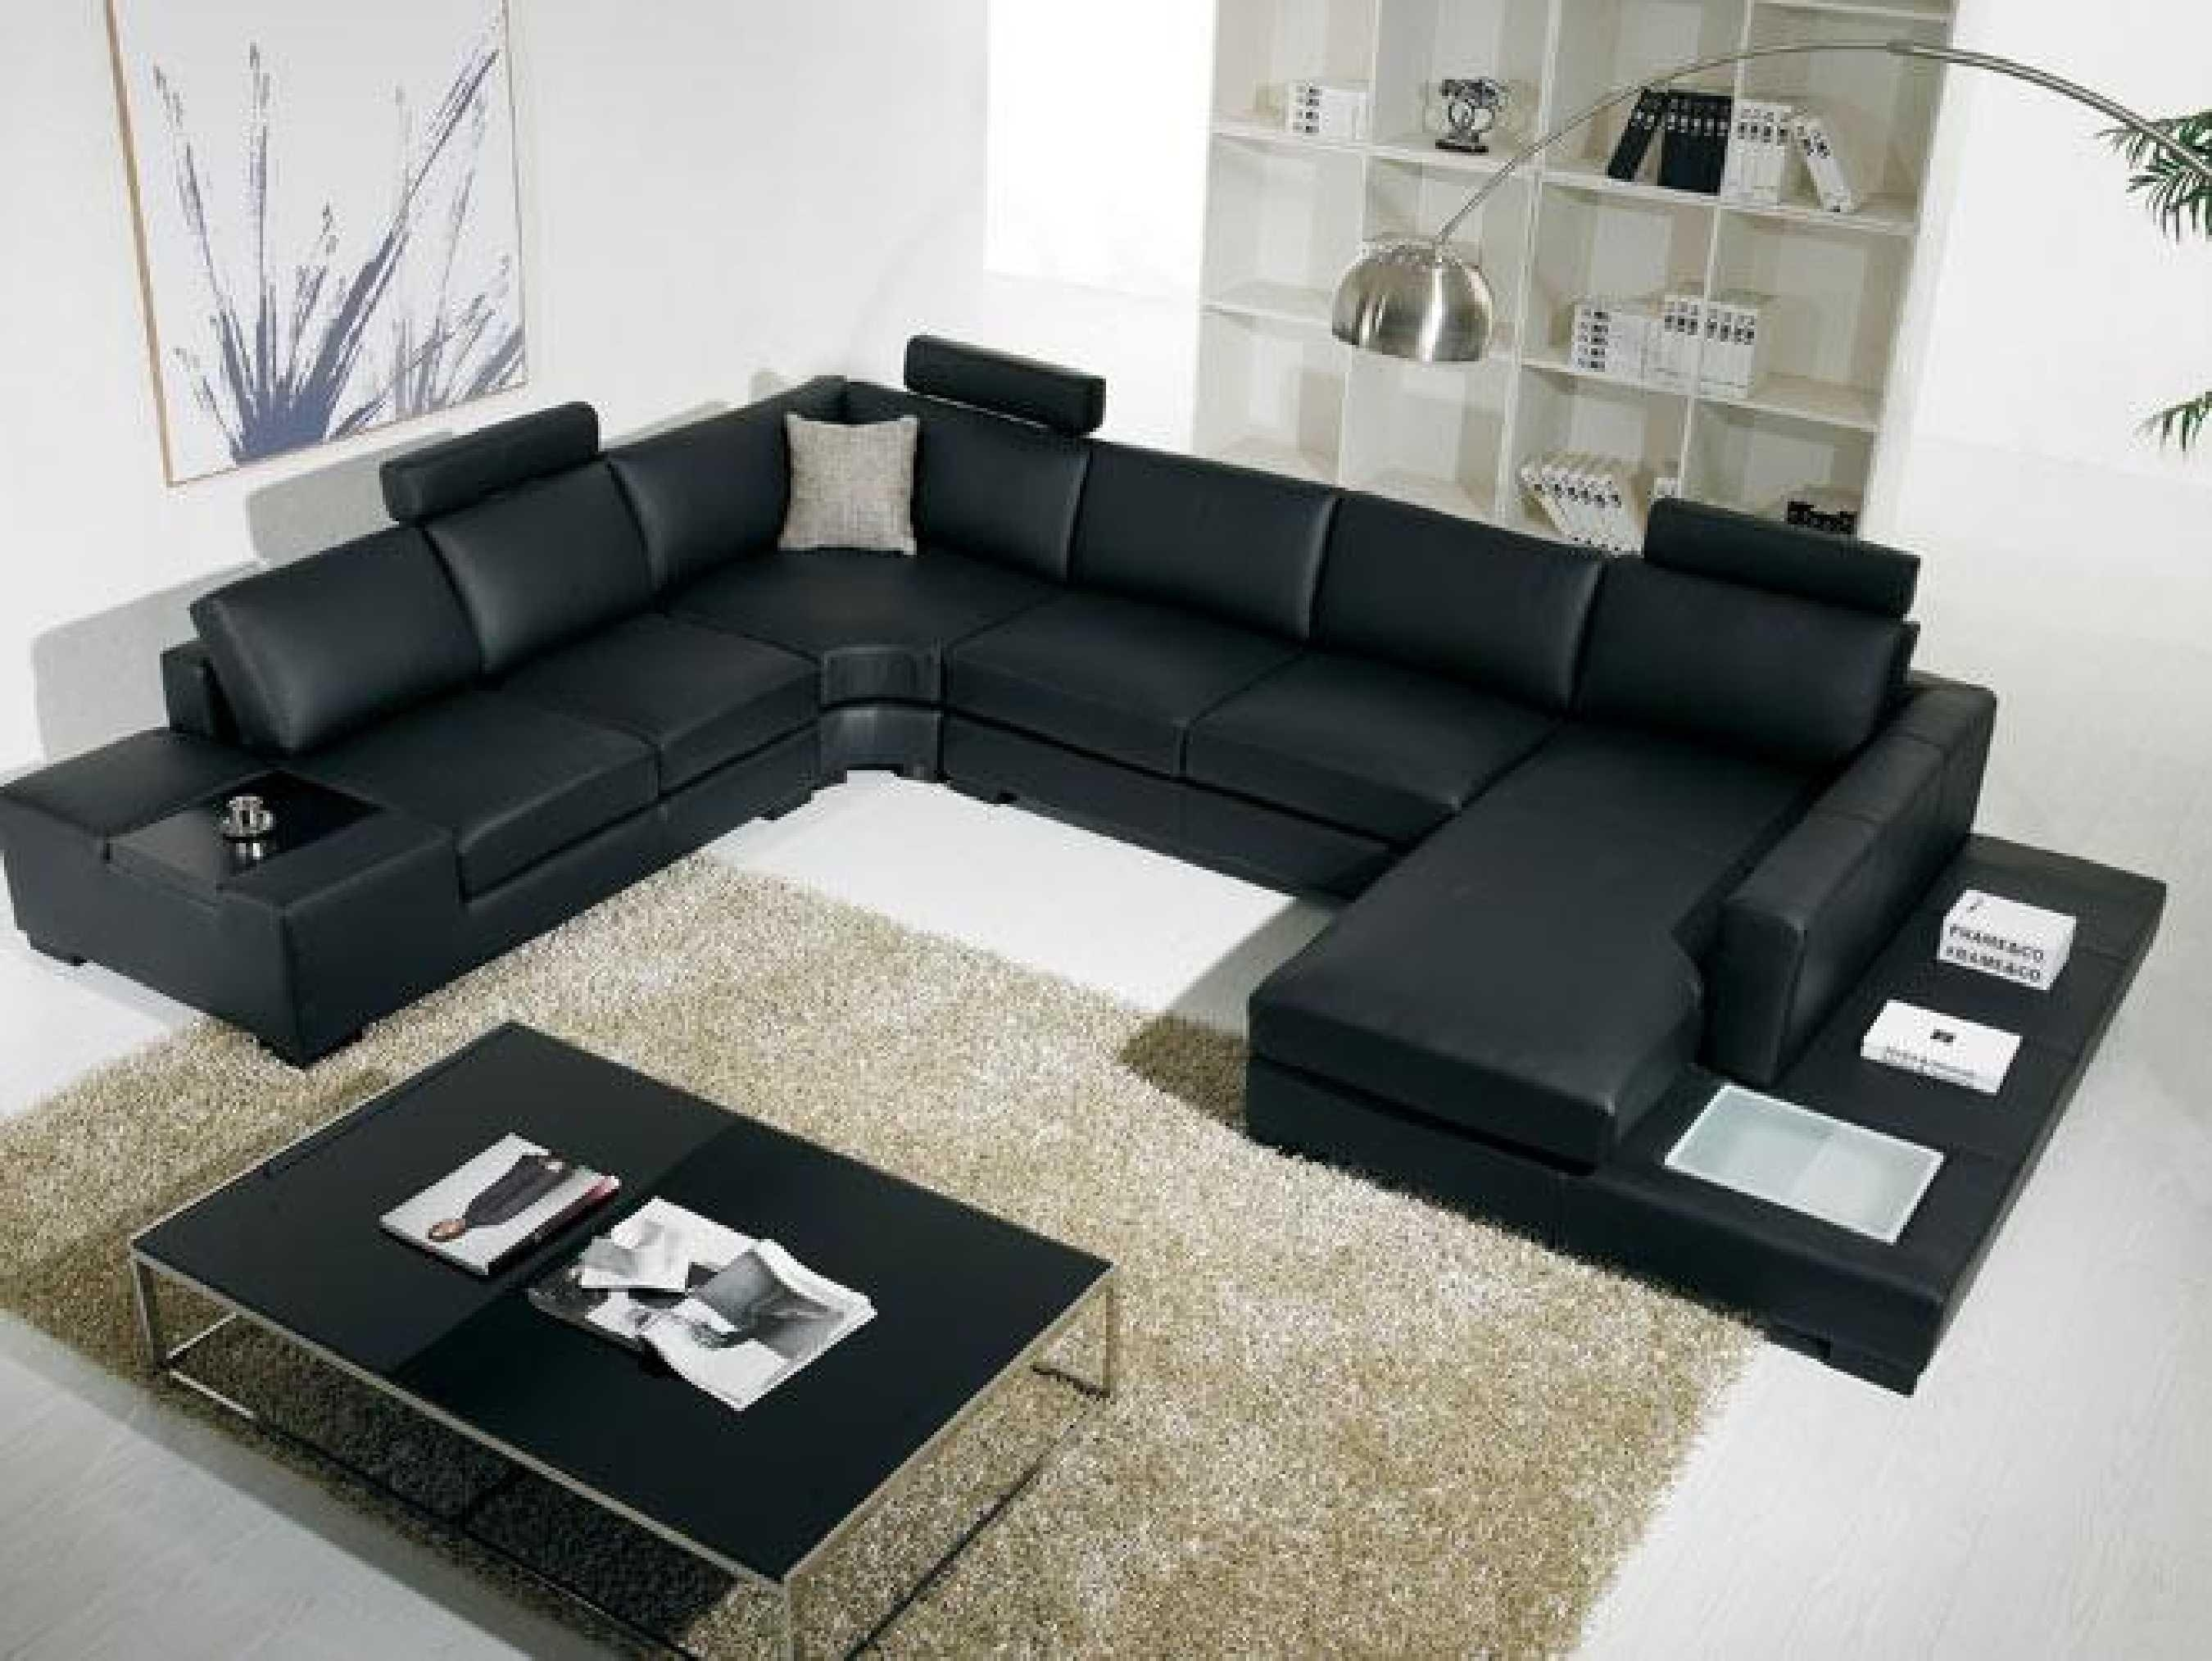 Living Room : Awesome Black Leather Sectional Living Room Ideas Pertaining To Black Leather Sectional Sleeper Sofas (Image 11 of 21)